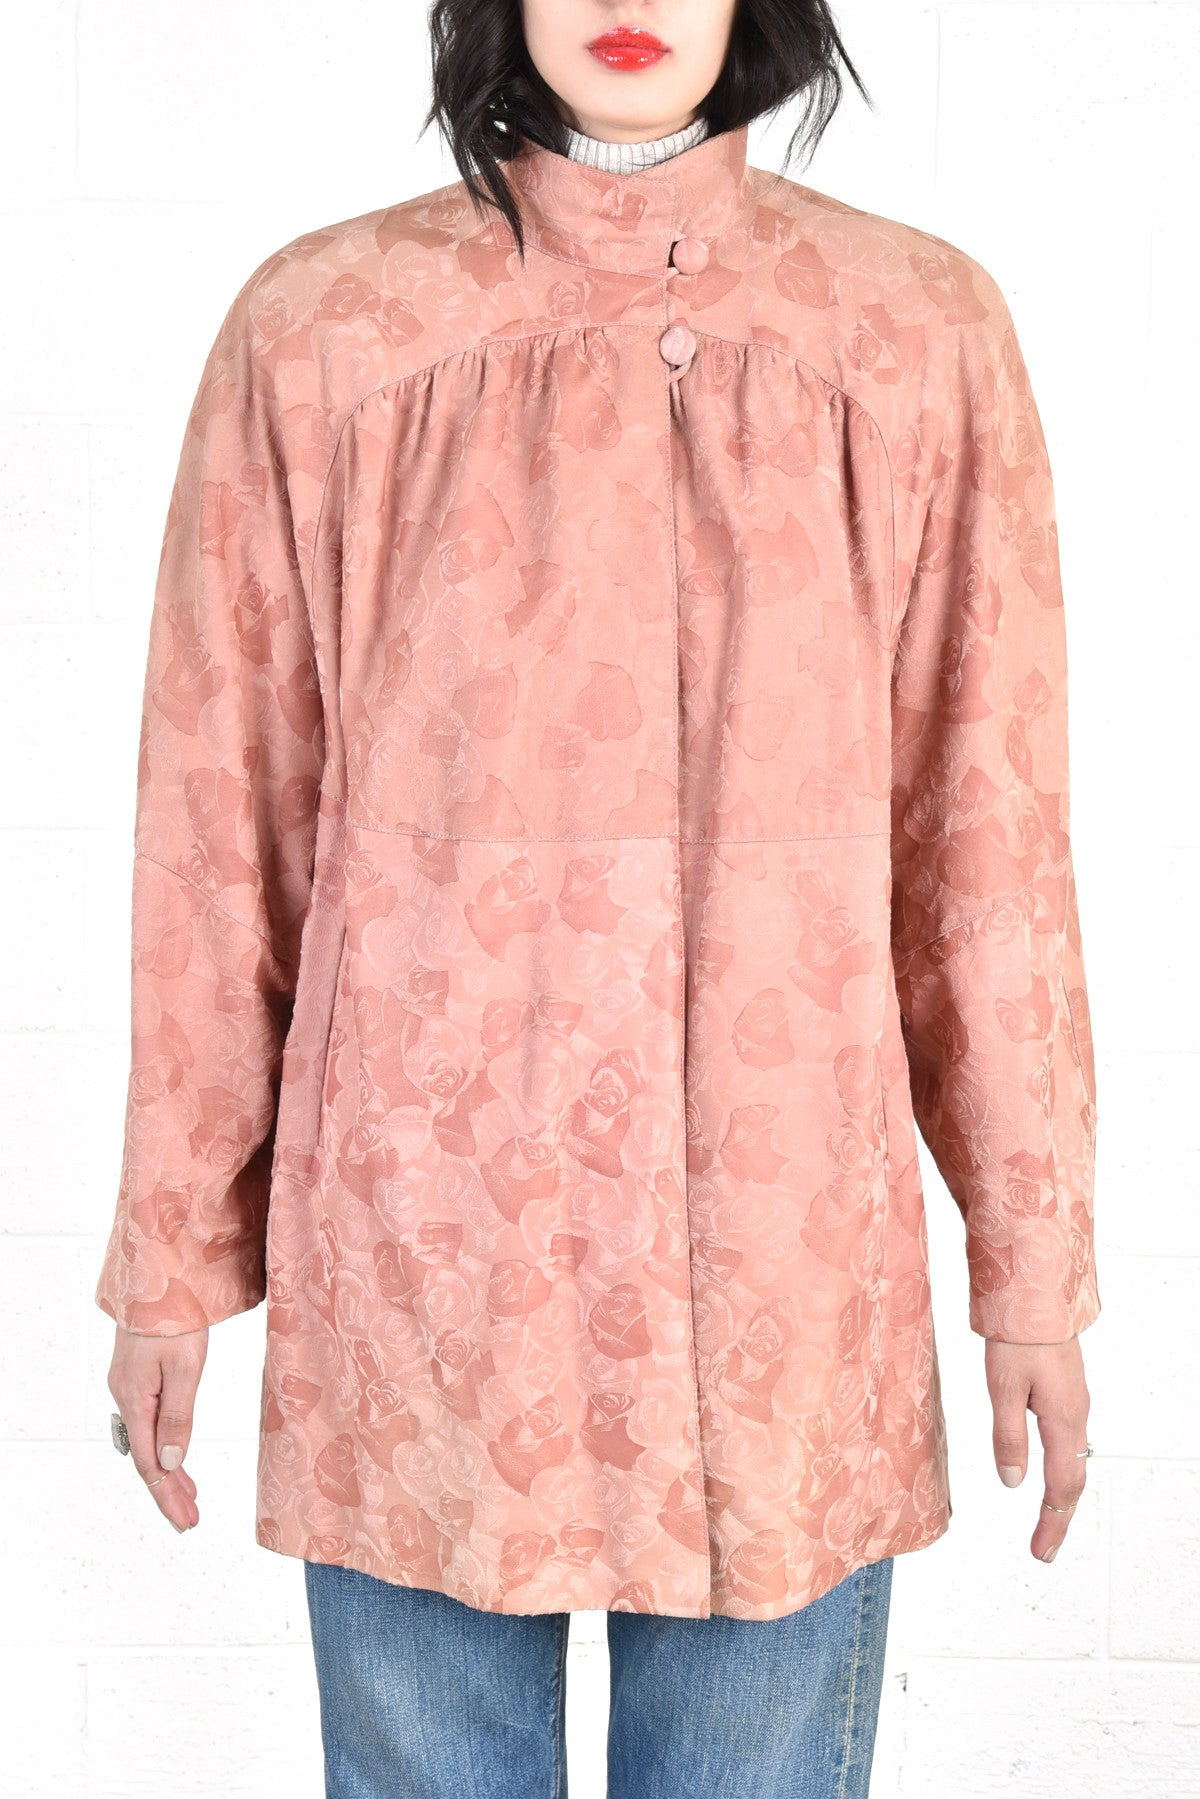 Leather jacket with roses - Bally Dusty Rose Leather Jacket W Embossed Roses